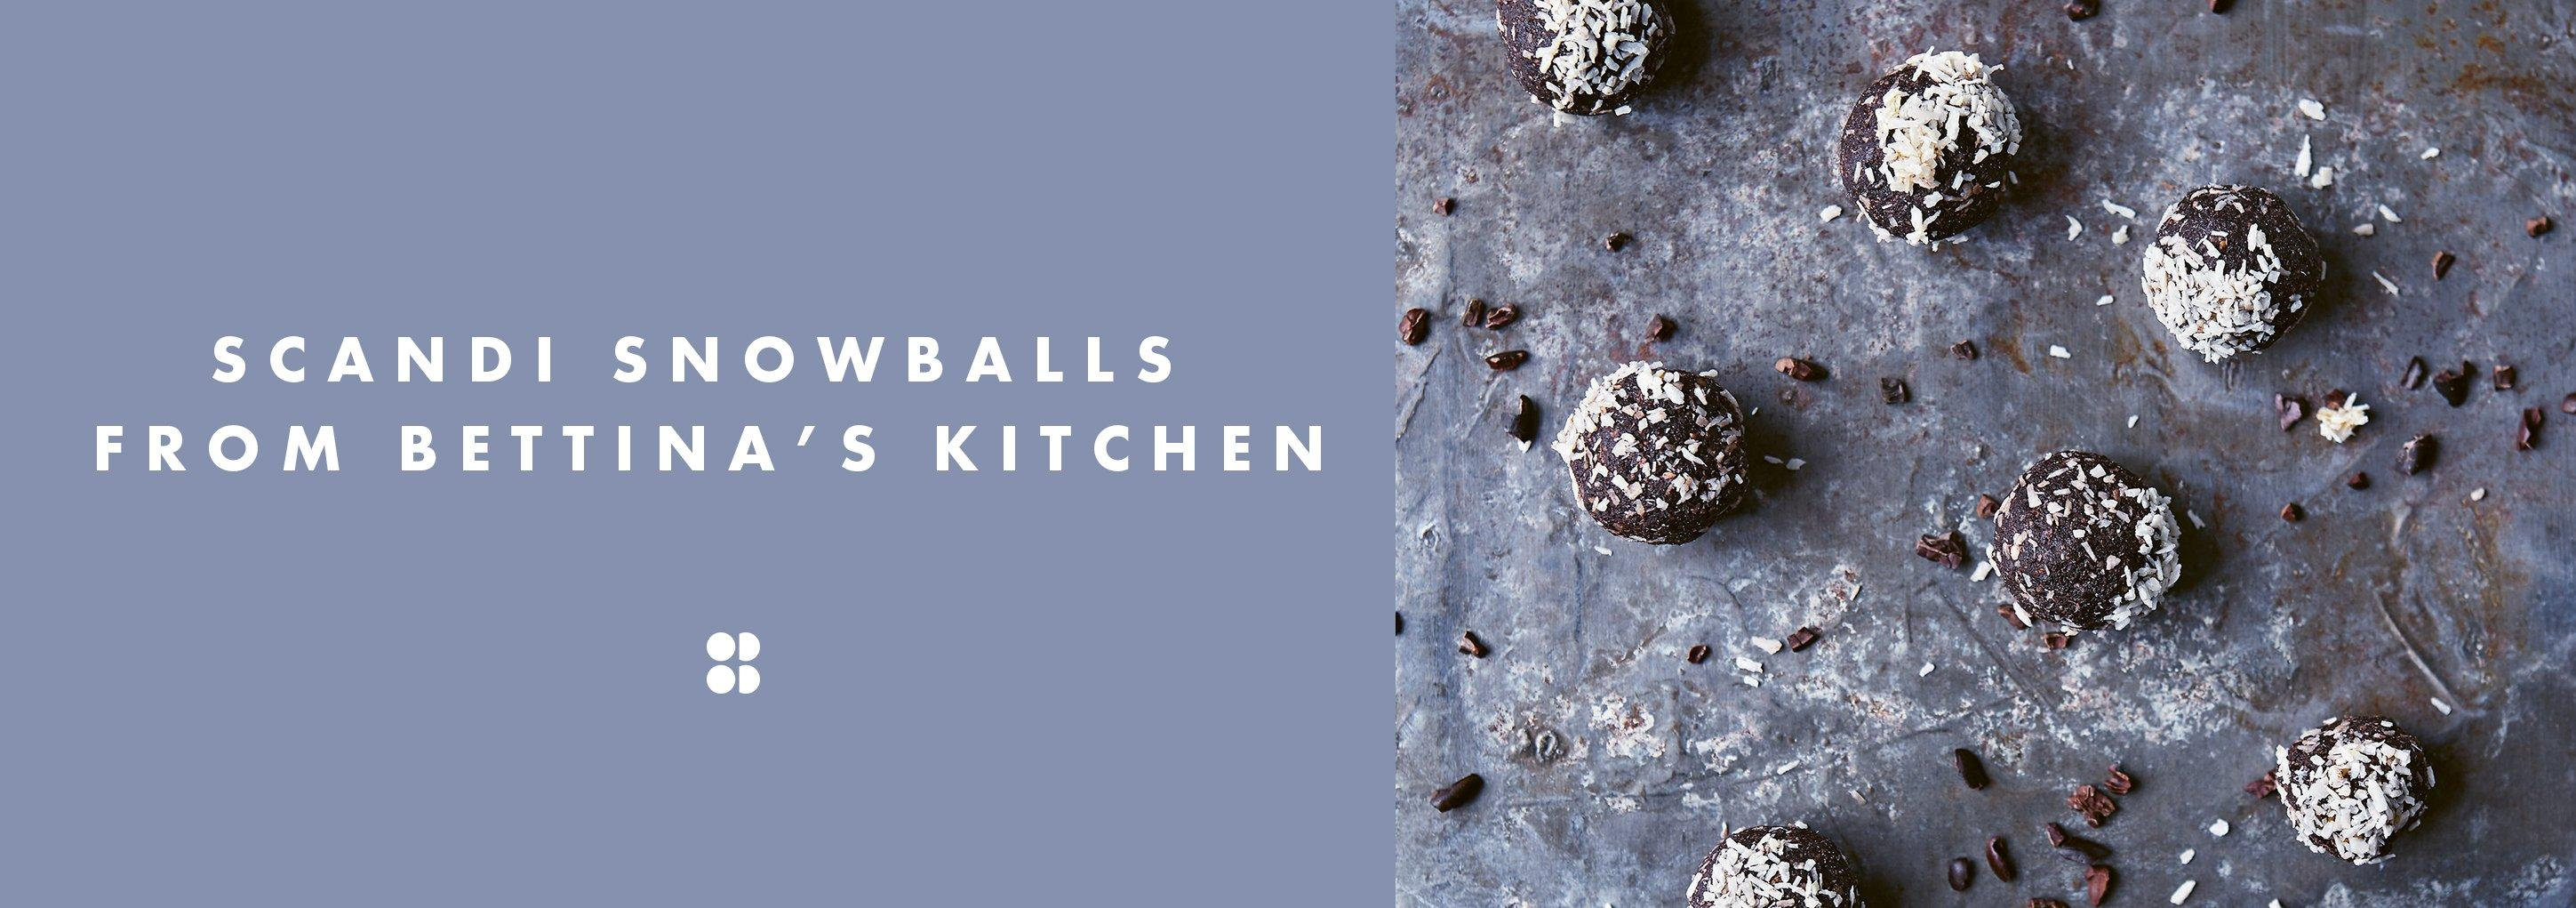 Scandi Snowballs From Bettina's Kitchen